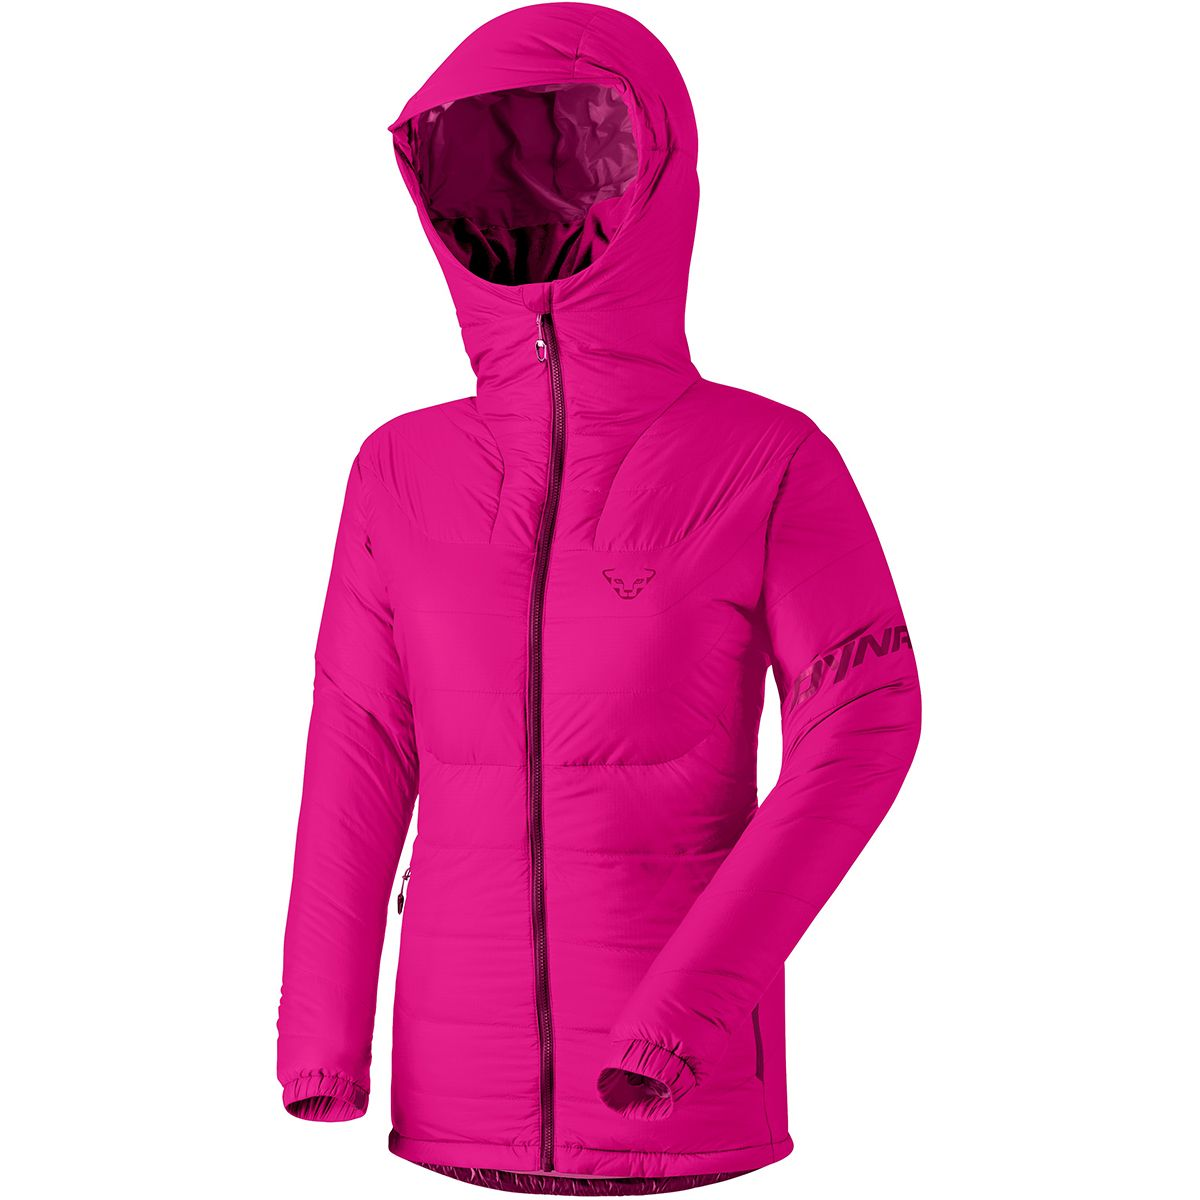 Dynafit Damen FT Down Jacke (Größe M, Pink) | Isolationsjacken > Damen